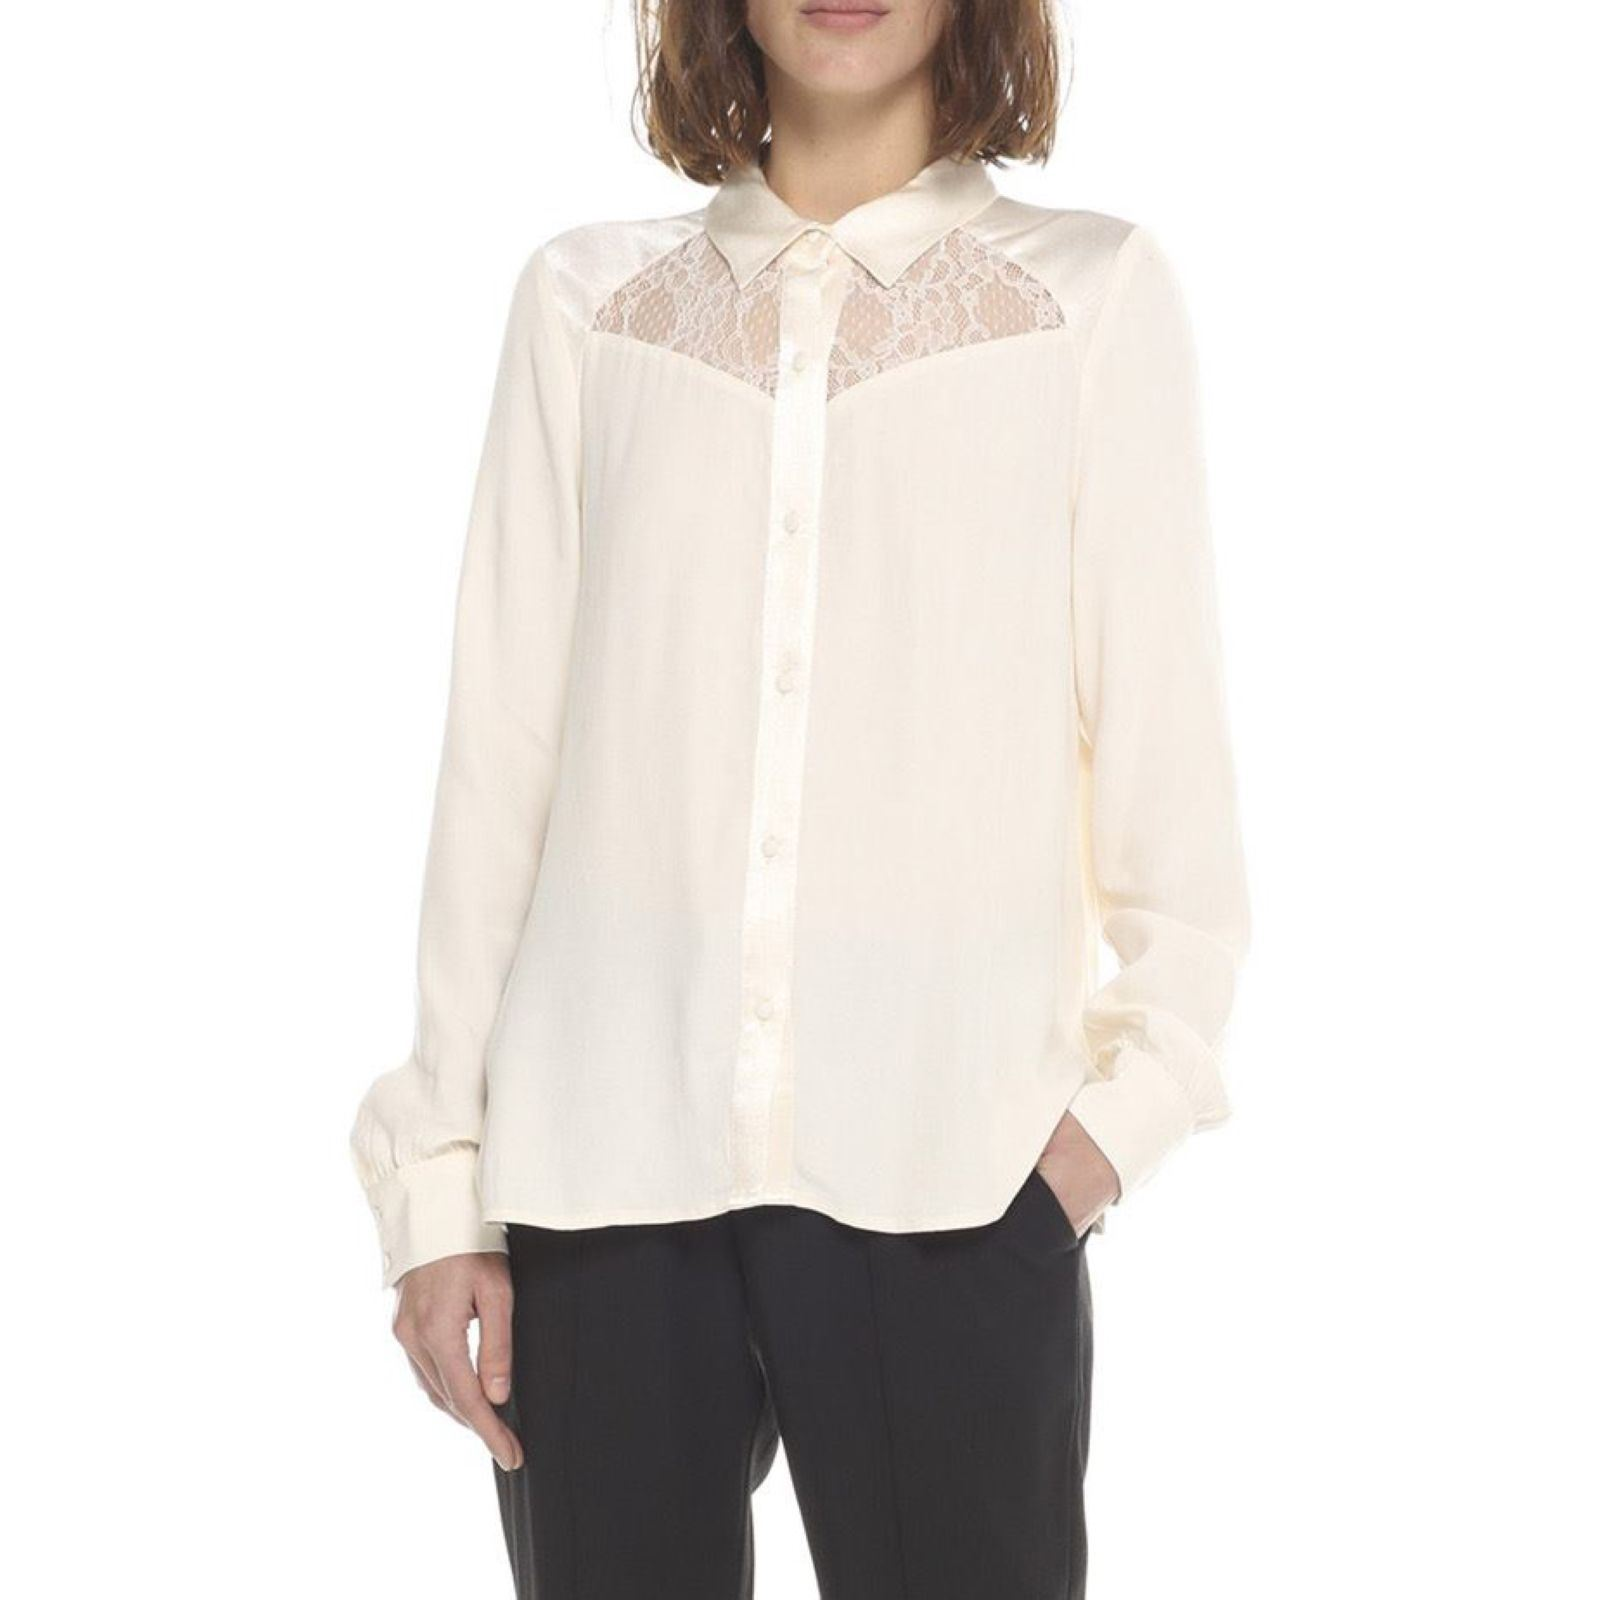 Blouse Abylou Blouse Charlise Beige Abylou Charlise Beige Charlise YwSZwq